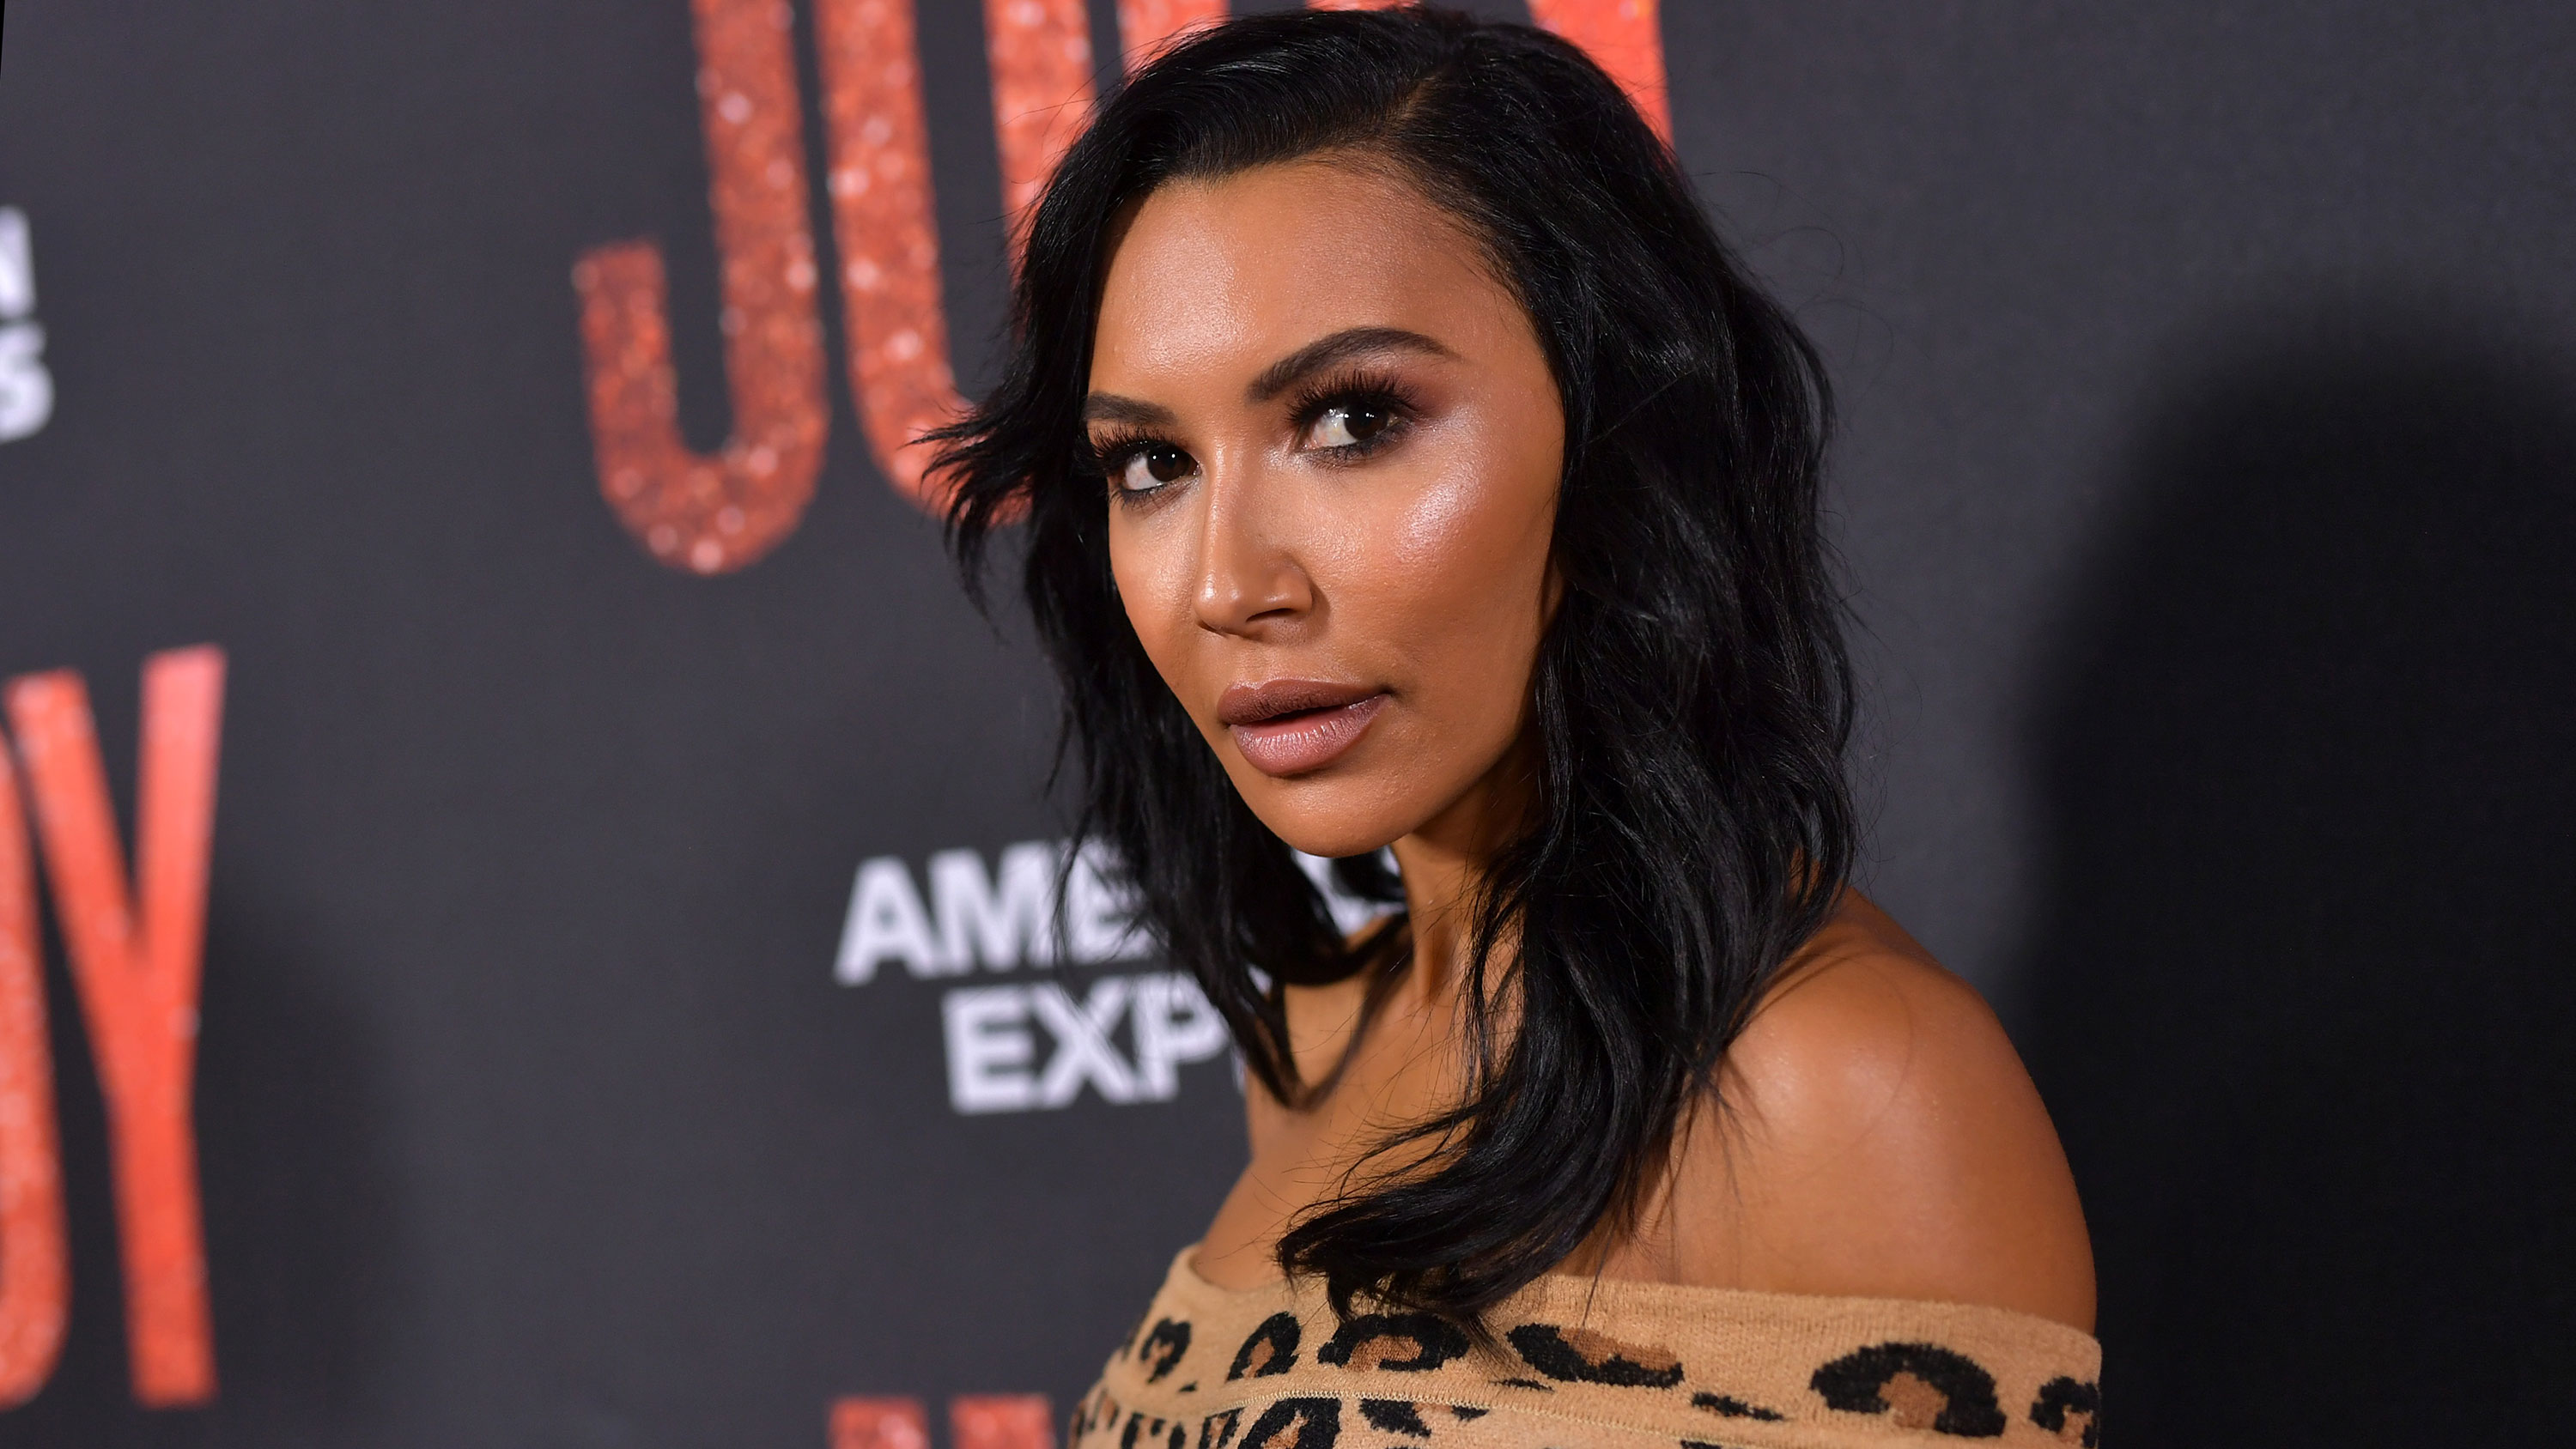 'Glee' actress Naya Rivera 'mustered enough energy' to rescue her son 'but not enough to save herself,' authorities say